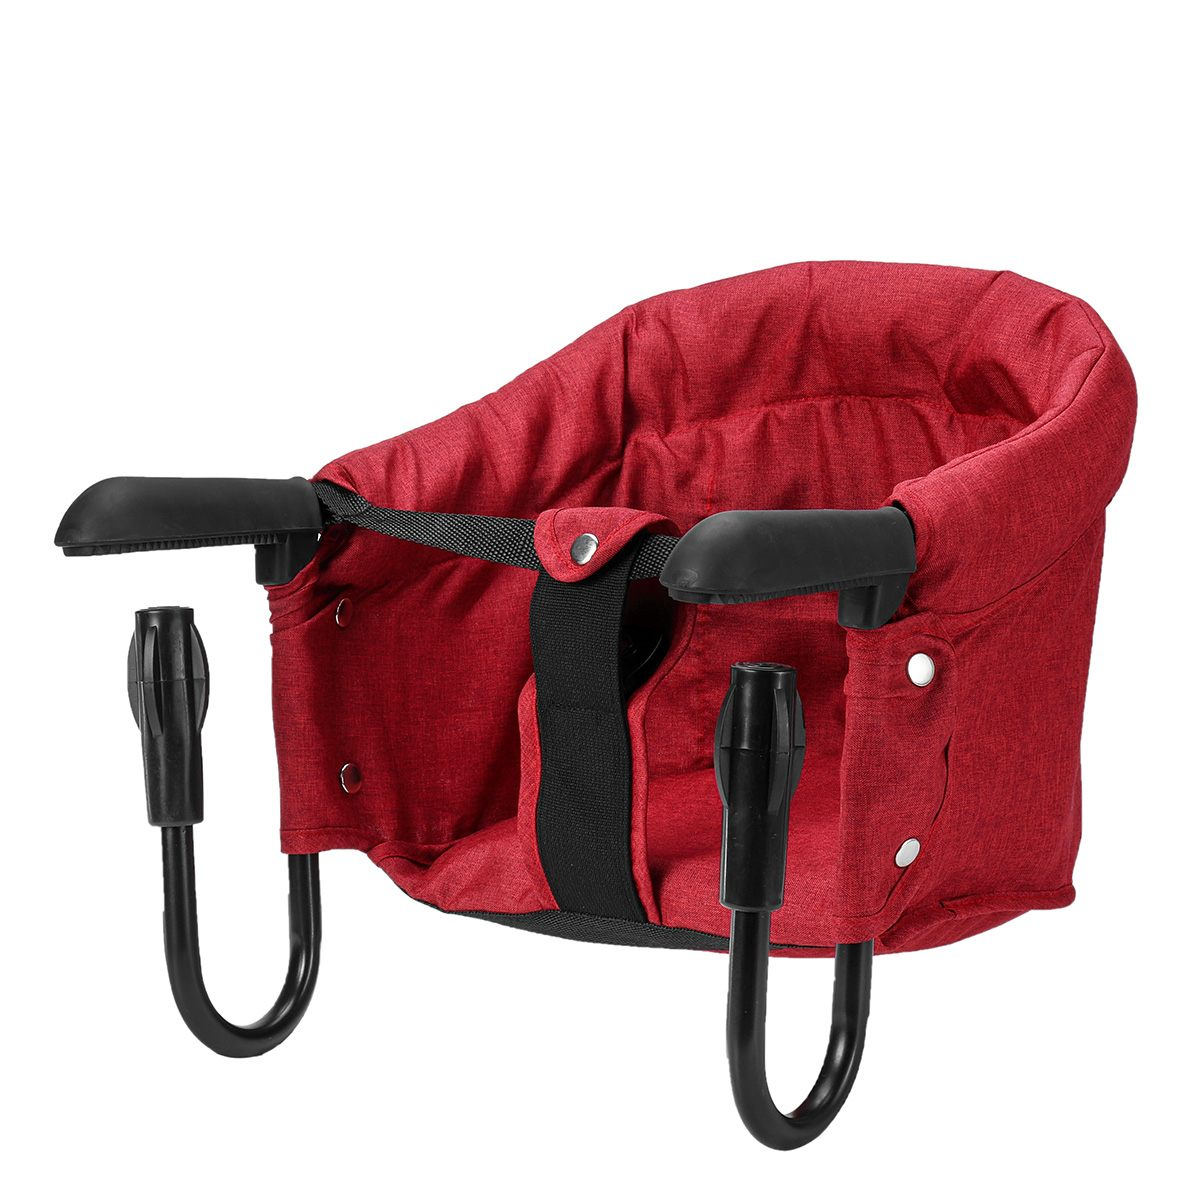 4fbca5 Buy Booster Seat For Table And Get Free Shipping Zw